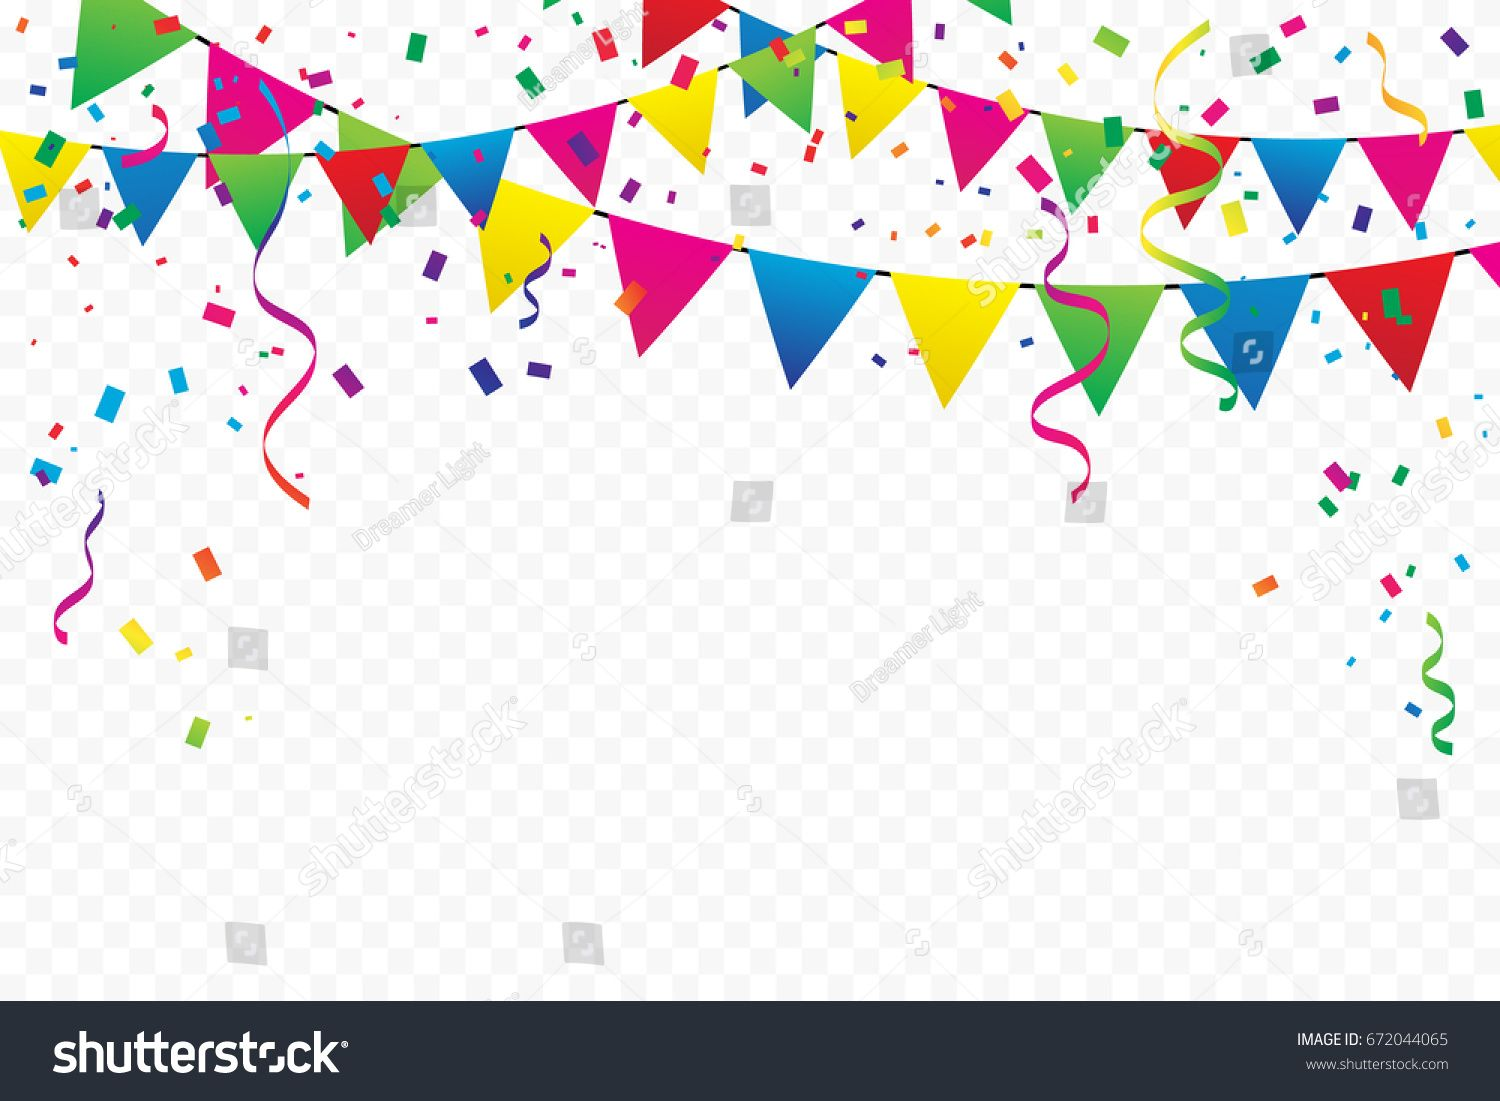 Colorful Party Flags With Confetti And Ribbons Falling On